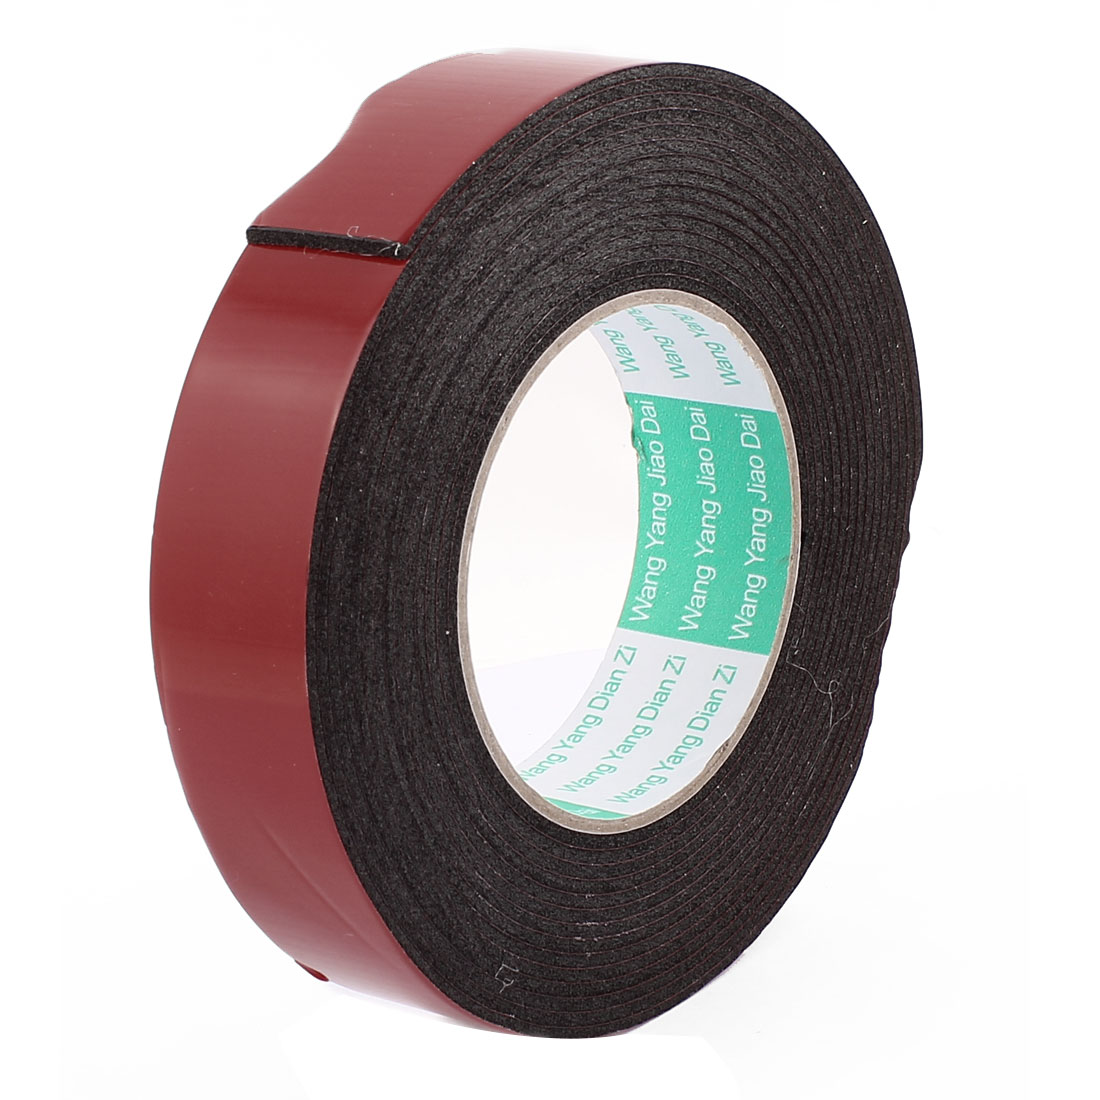 Black Strong Double Sided Adhesive Tape DIY Sponge Tape 30MM Width 5M Long